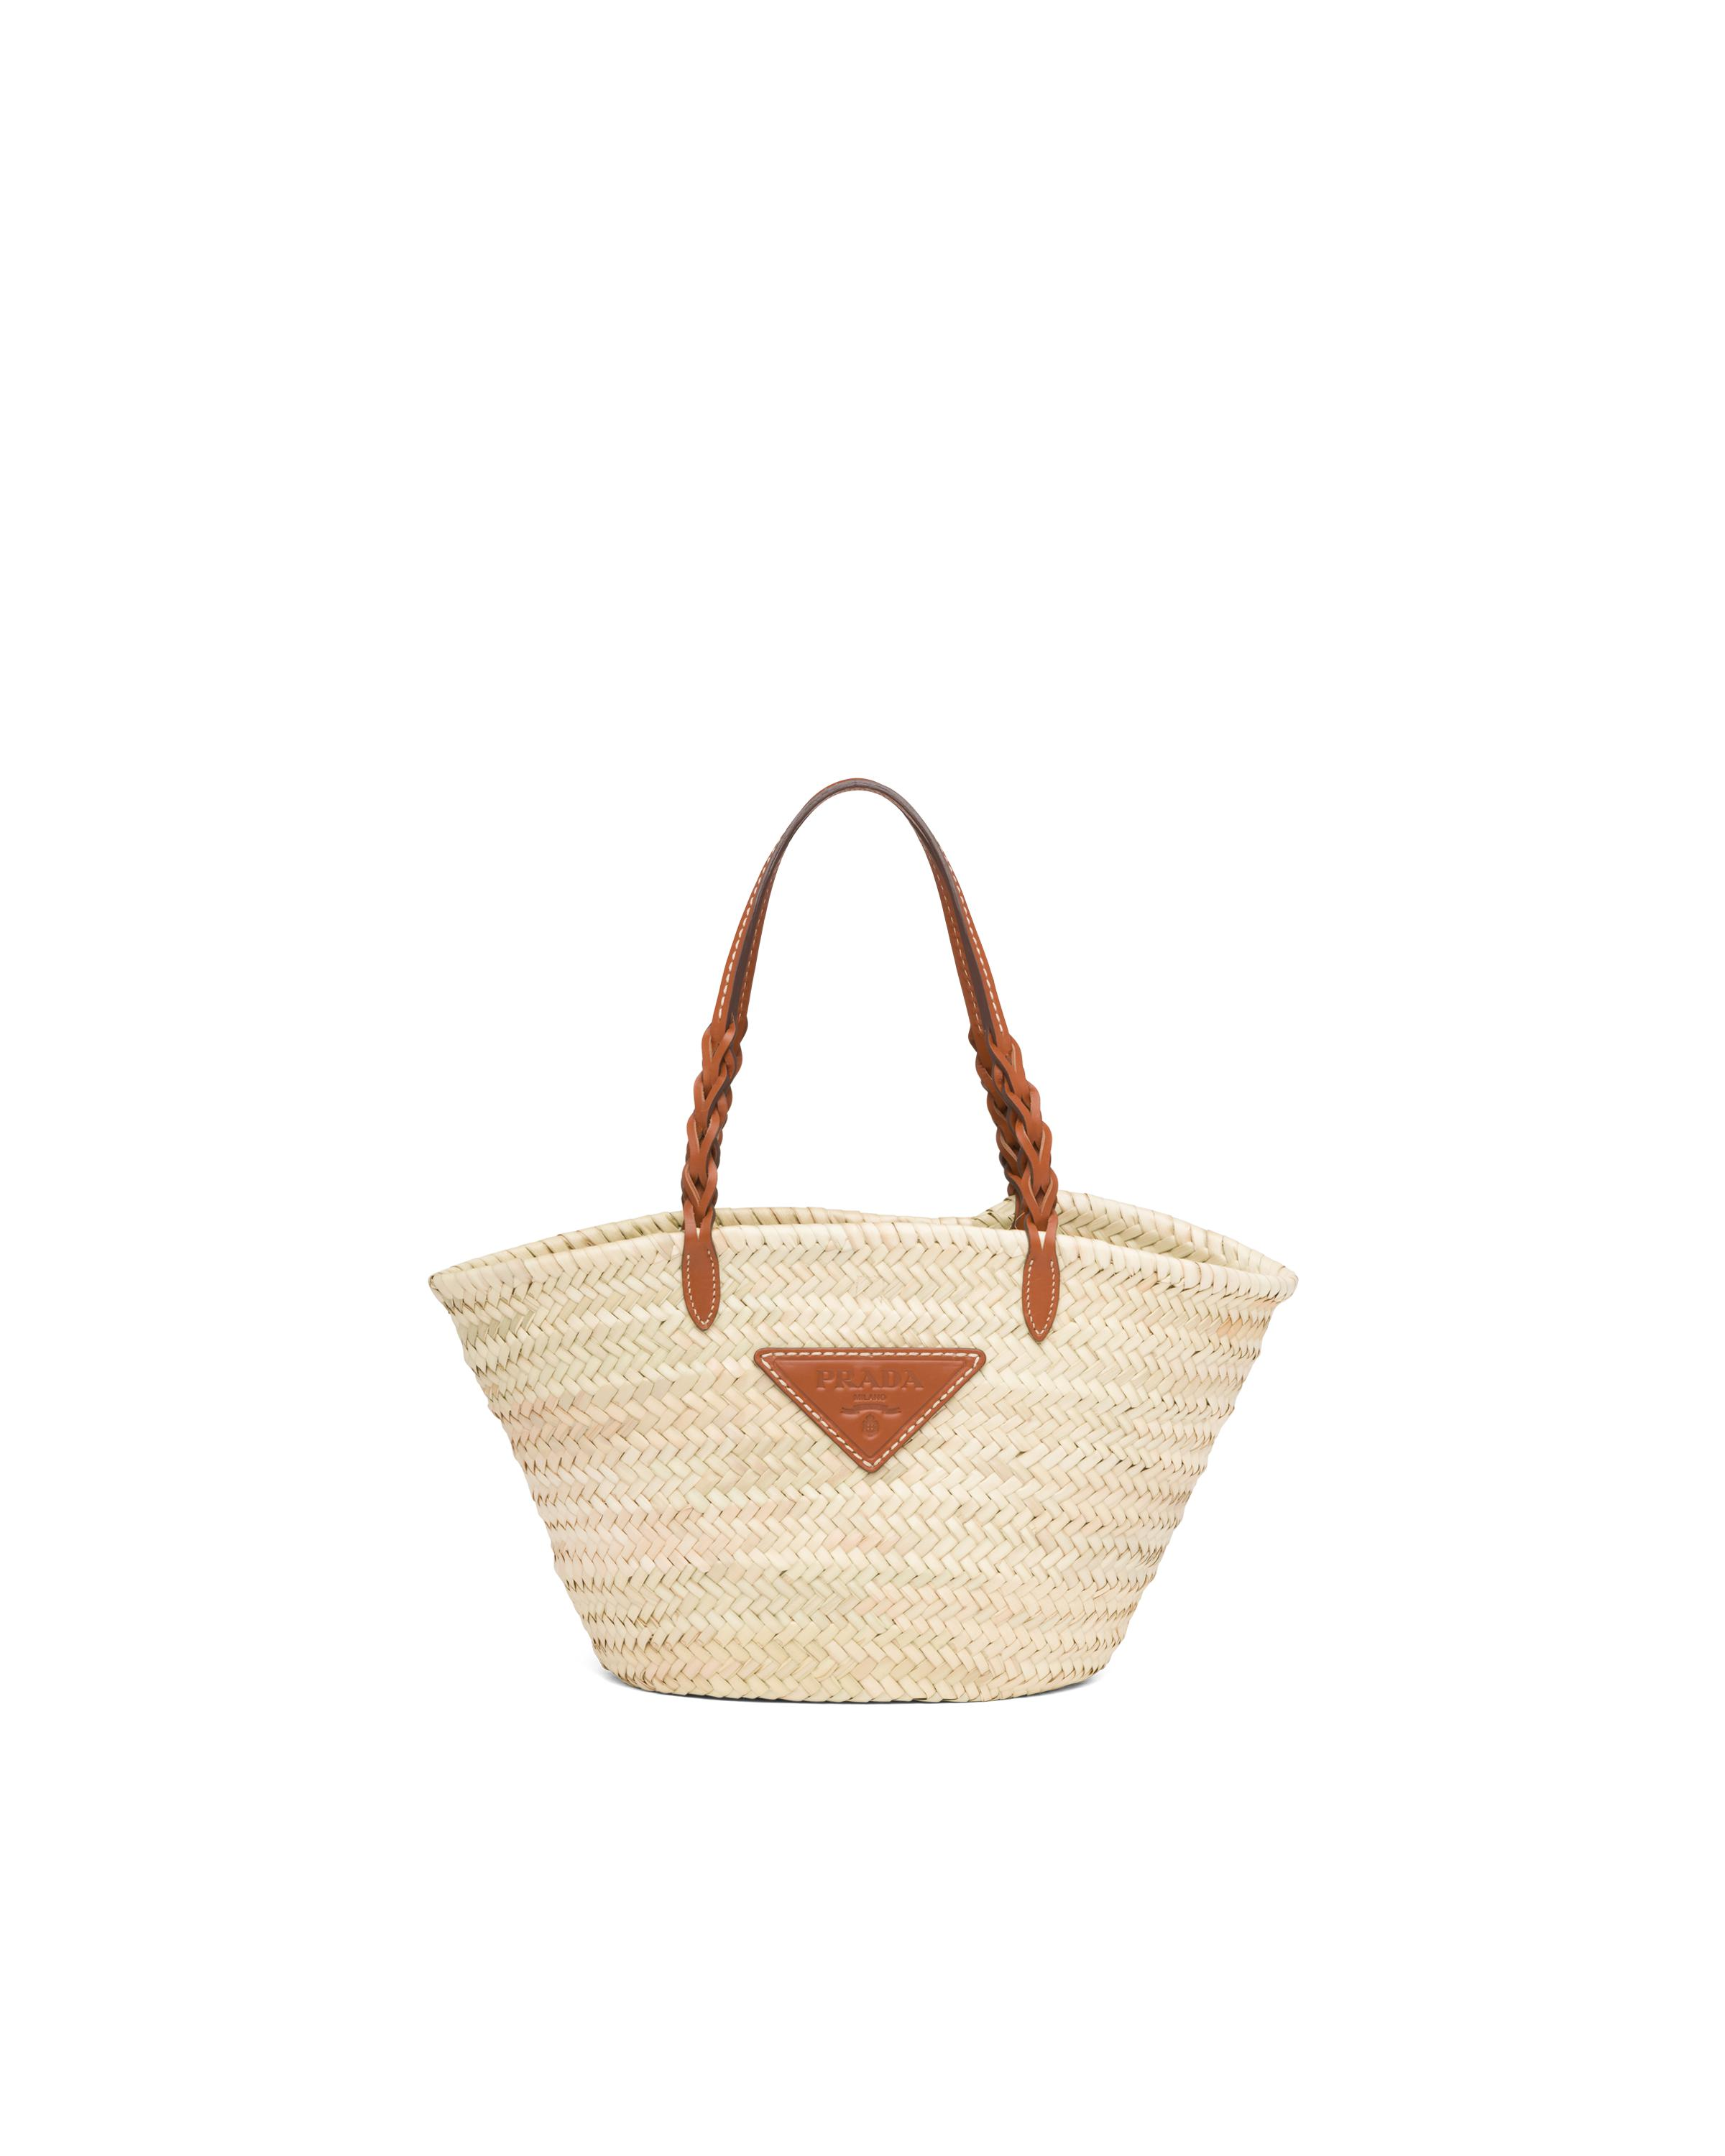 Woven Palm And Leather Tote Women Beige/cognac 7